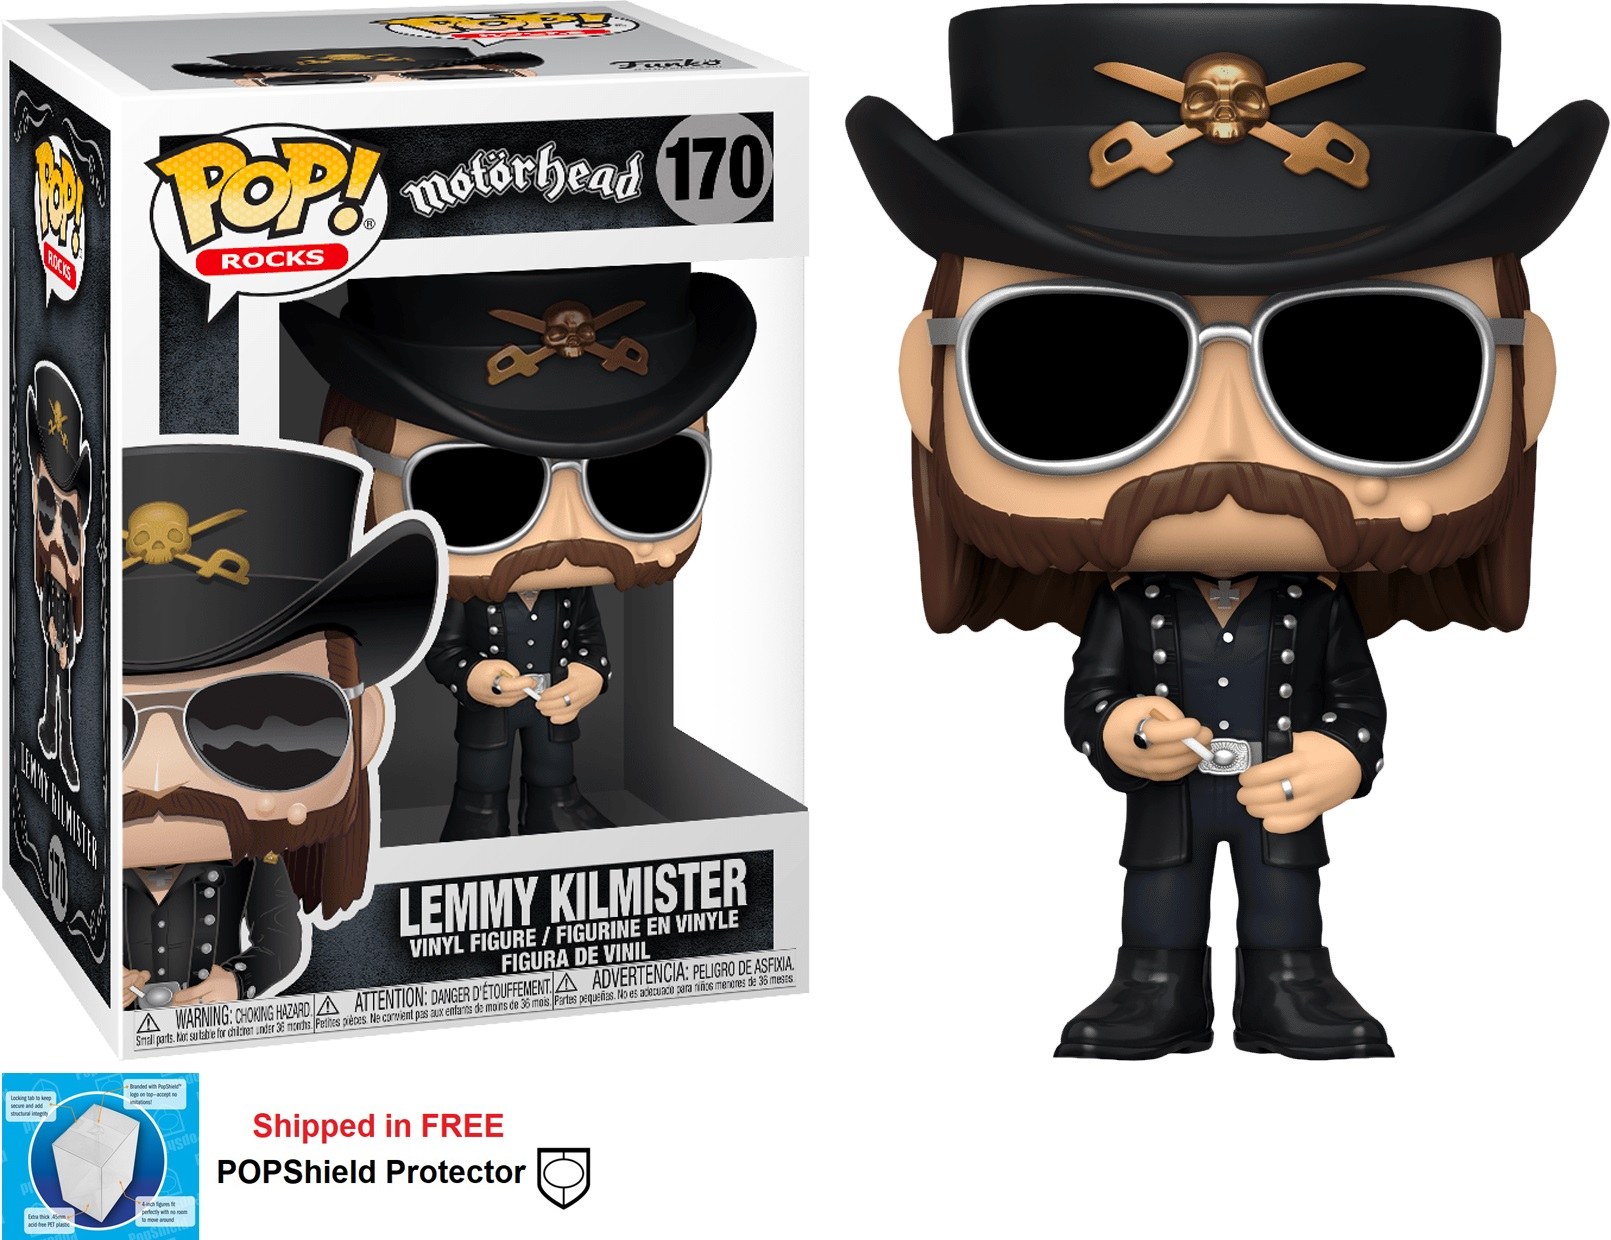 Funko POP Rocks Motorhead Lemmy Kilmister Figure - #170